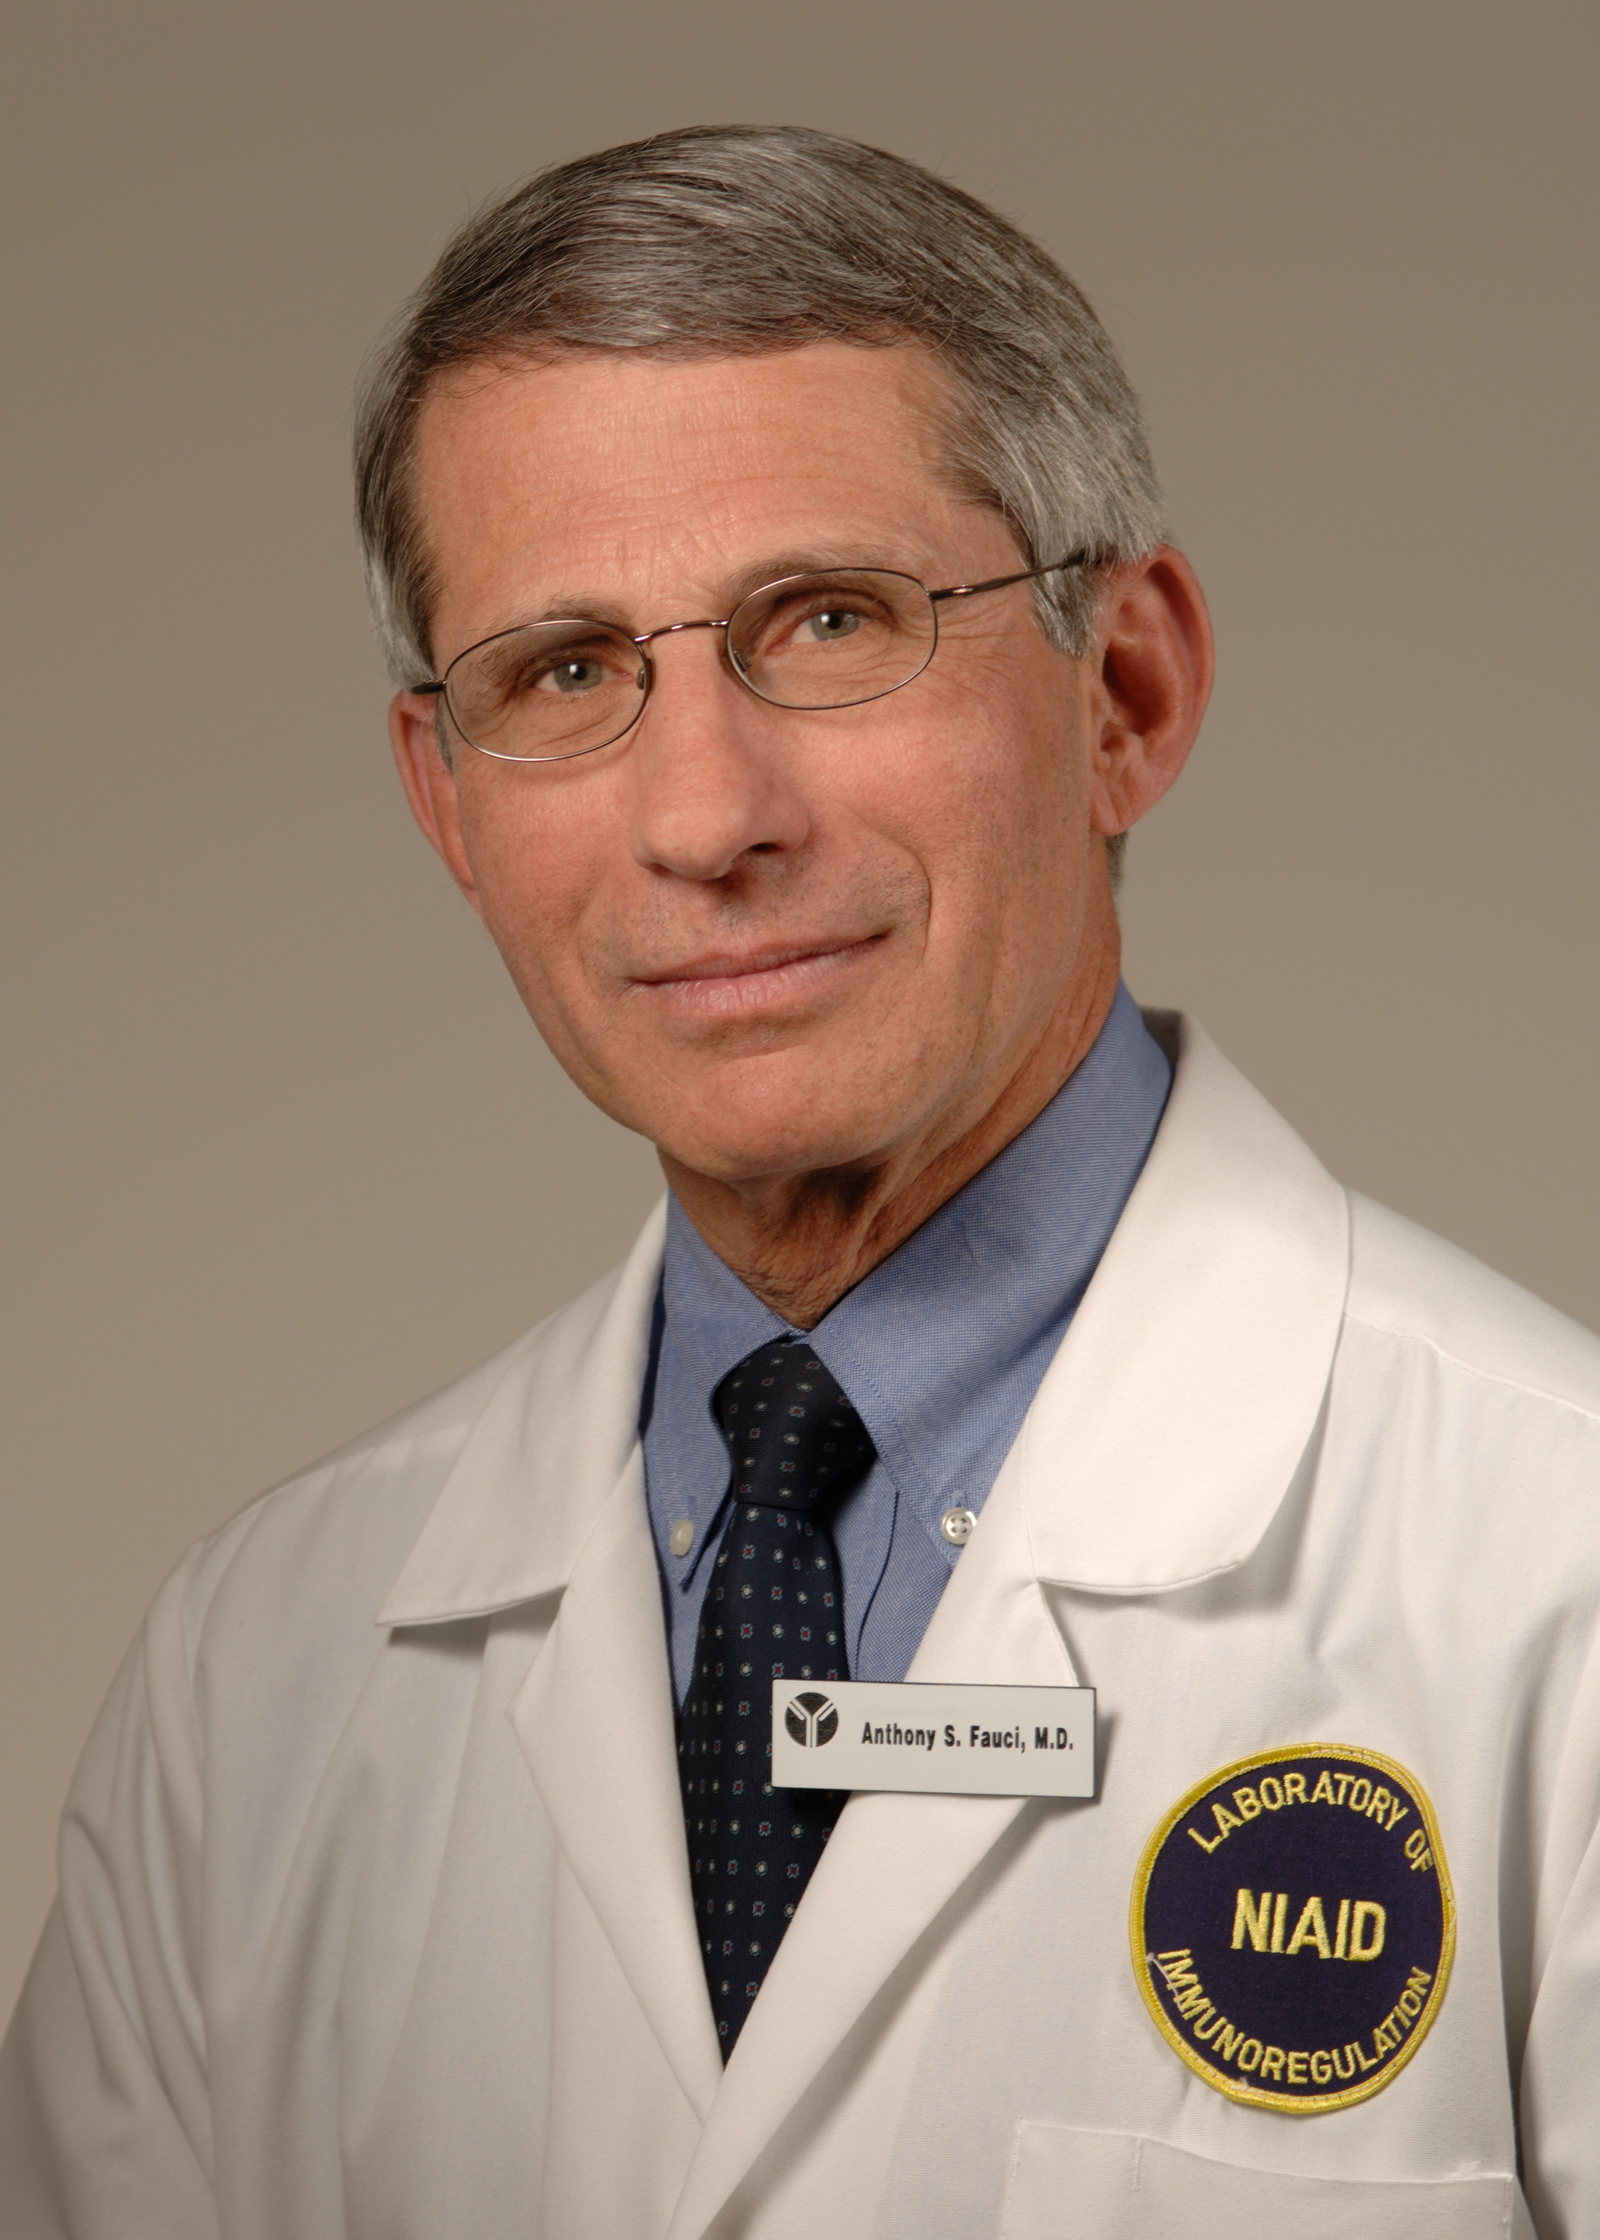 Dr. Anthony (Tony) S. Fauci, M.D., NIAID Director